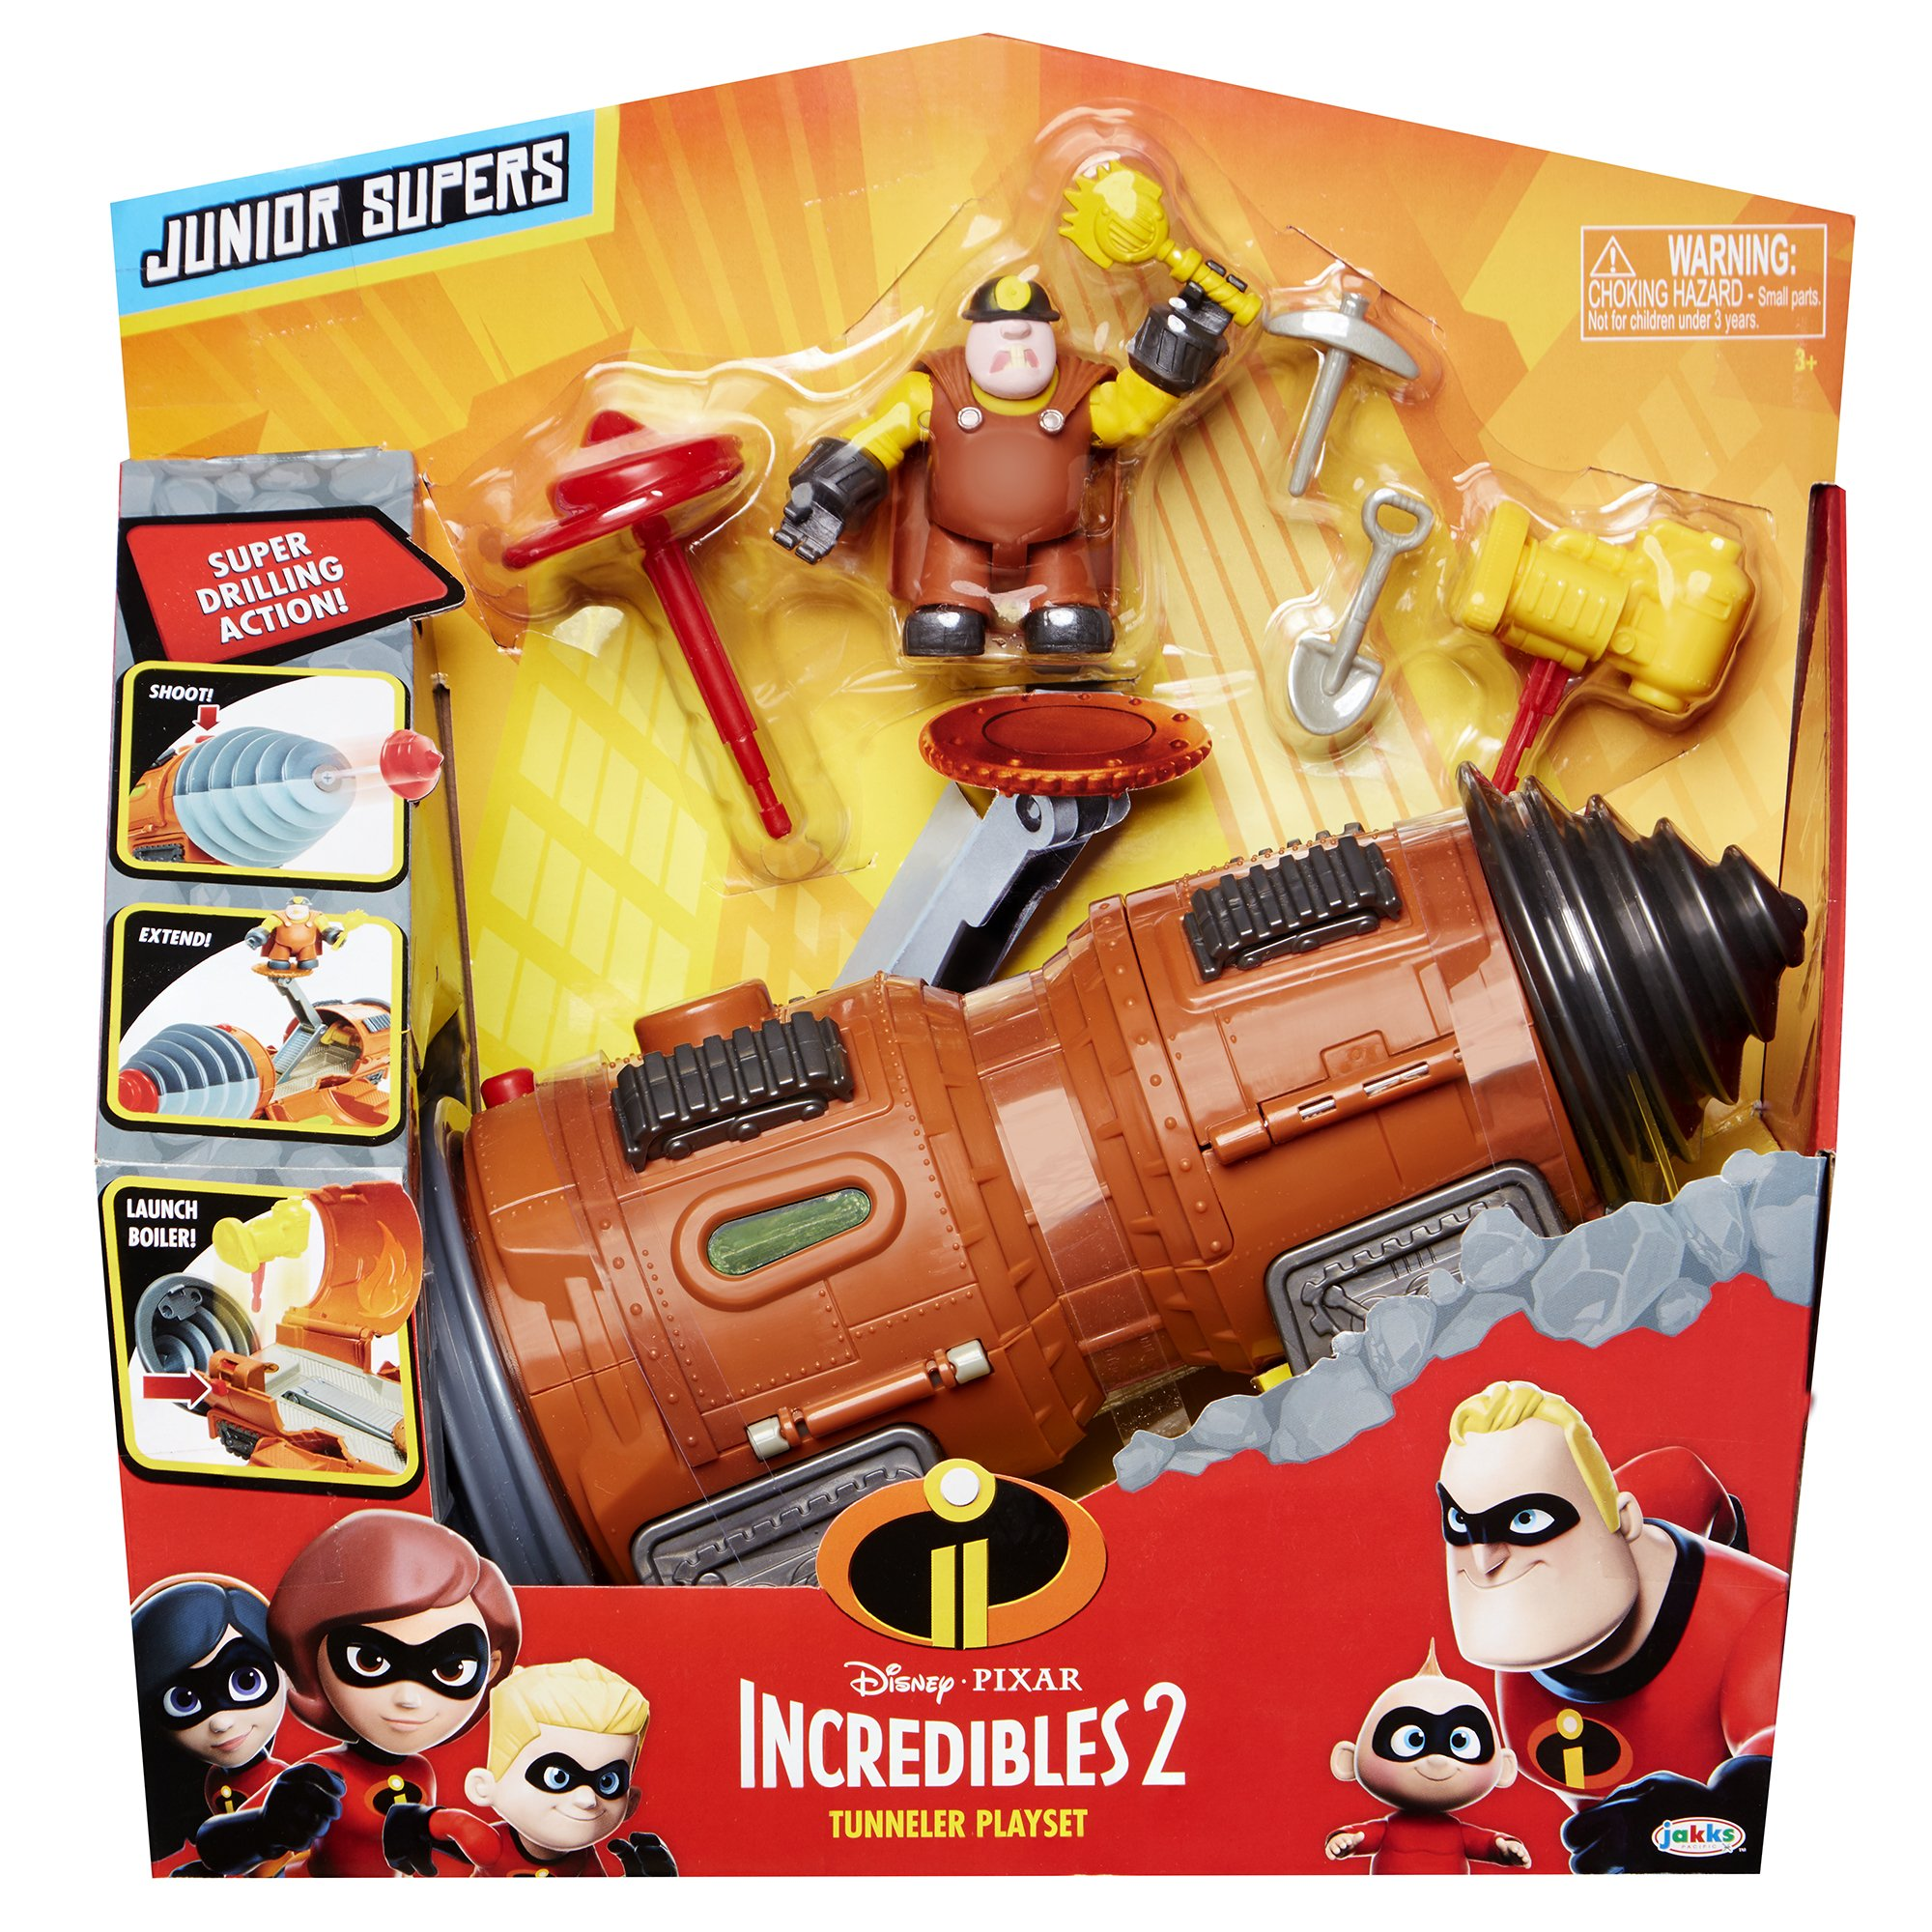 The Incredibles 2 Tunneler Vehicle Play Set with Junior Super Underminer Figure